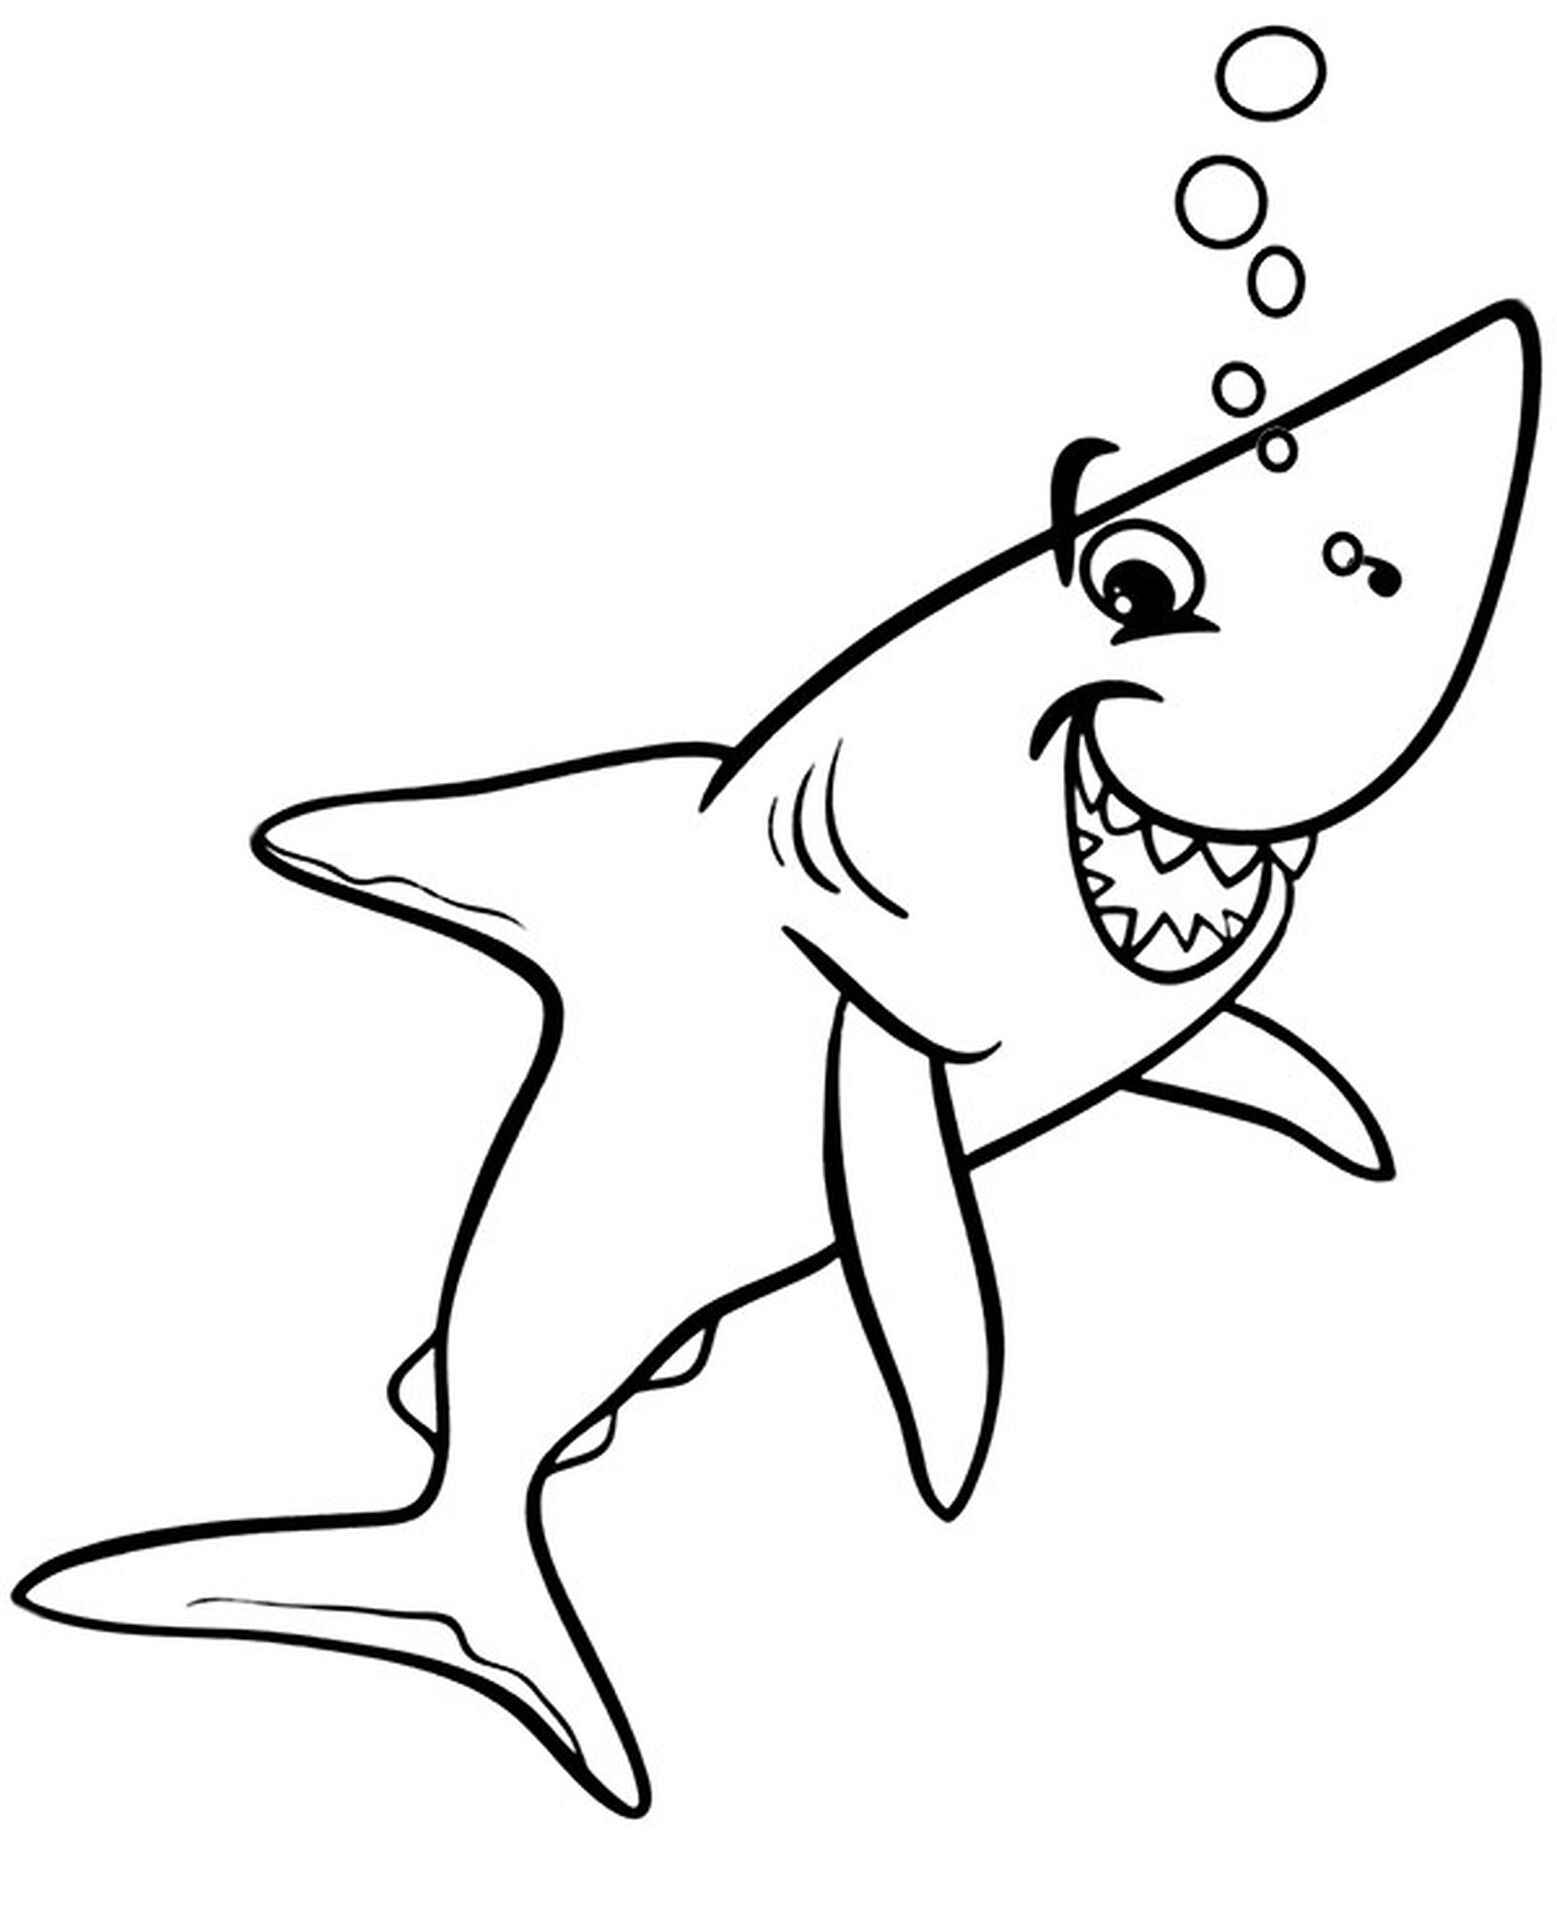 Easy Shark Coloring Page